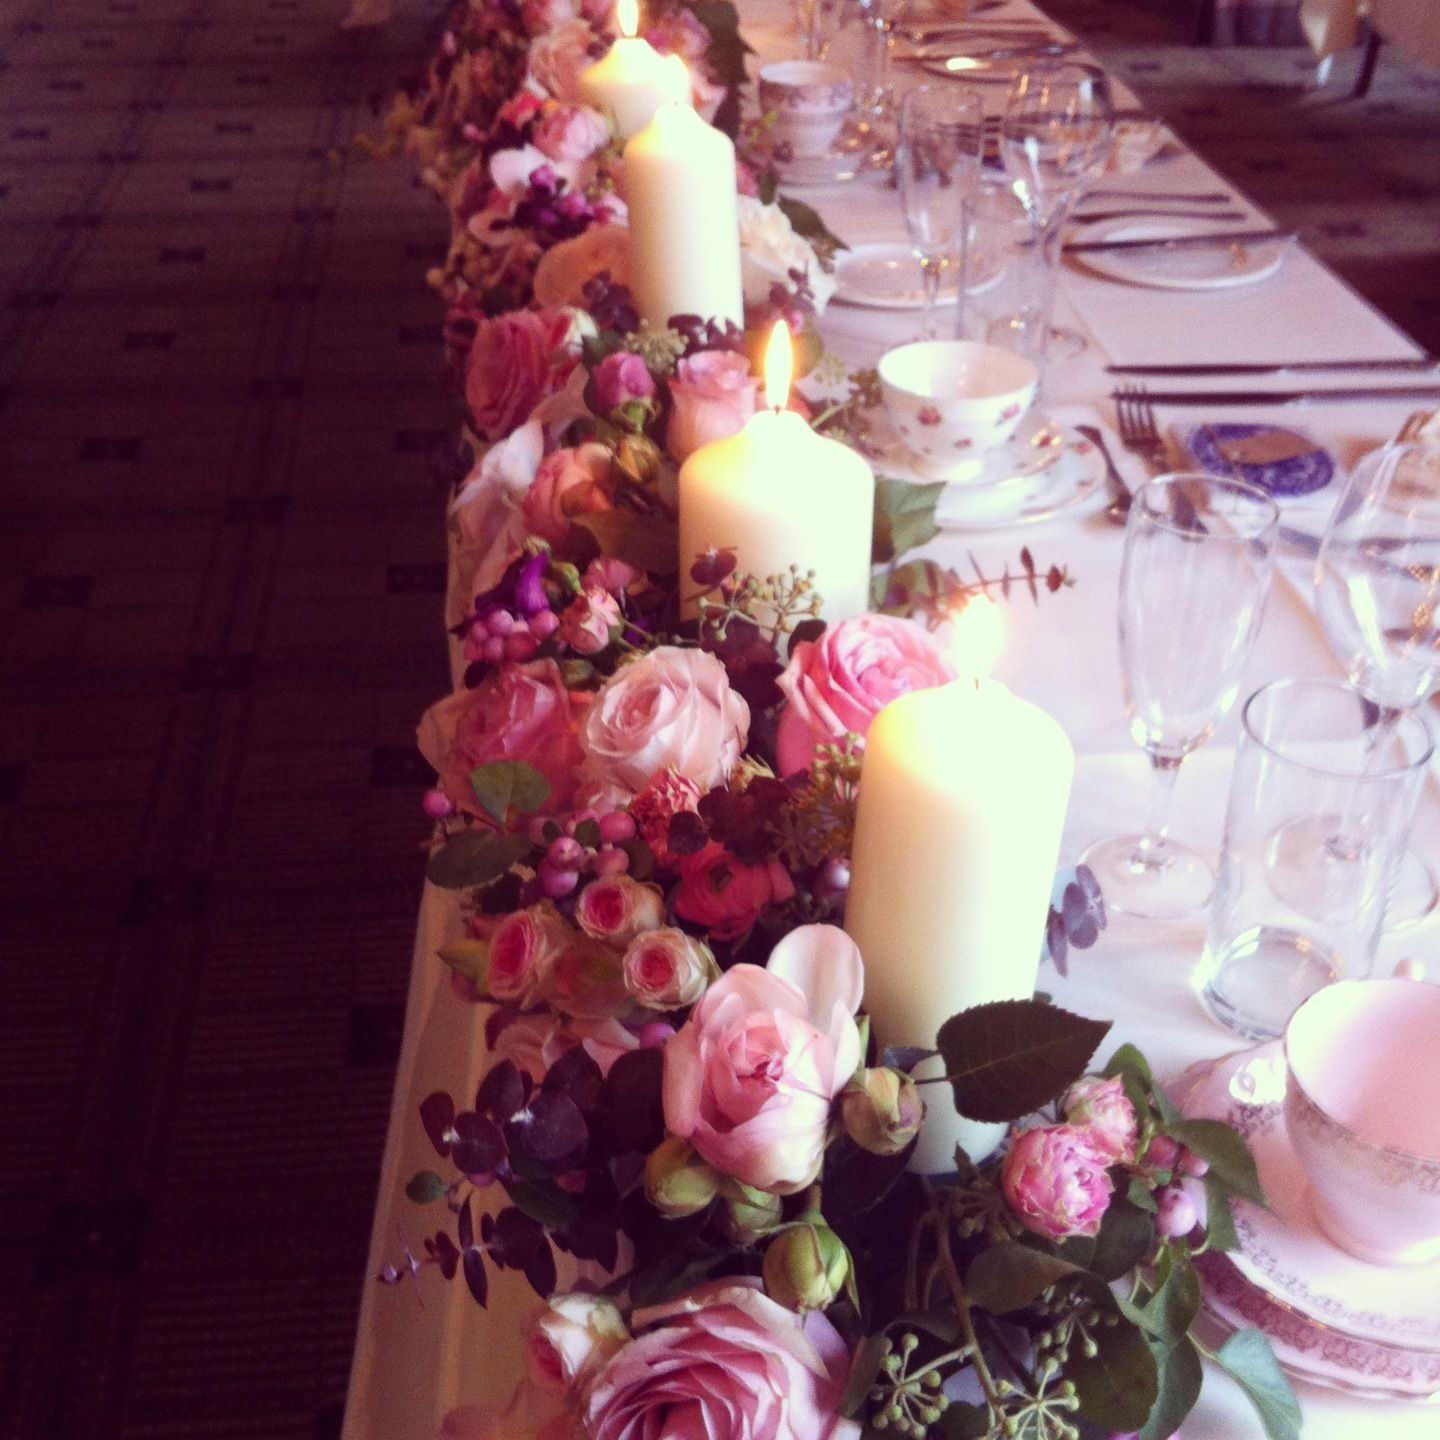 A Long Top Table Arrangement Full Of Roses And Candles,